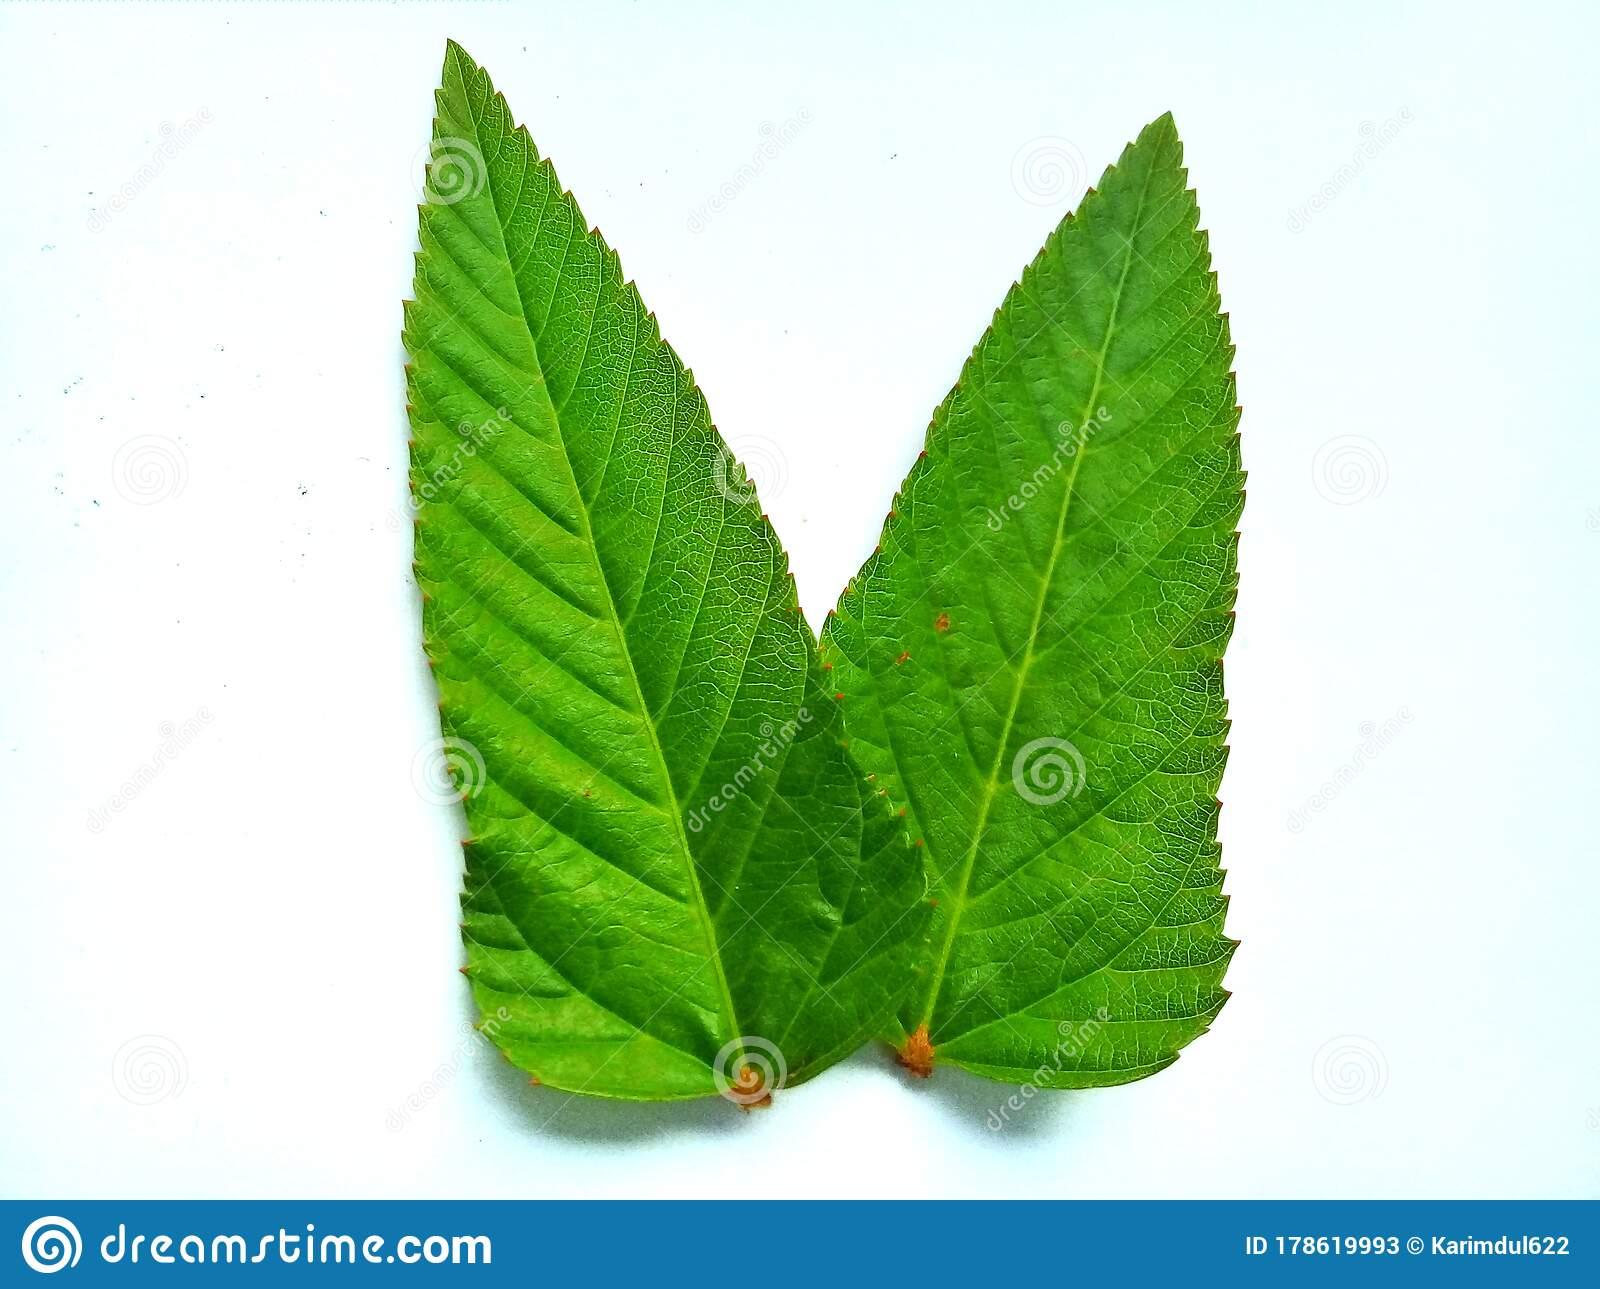 Leaf Fresh Green Color With Patterns White Background